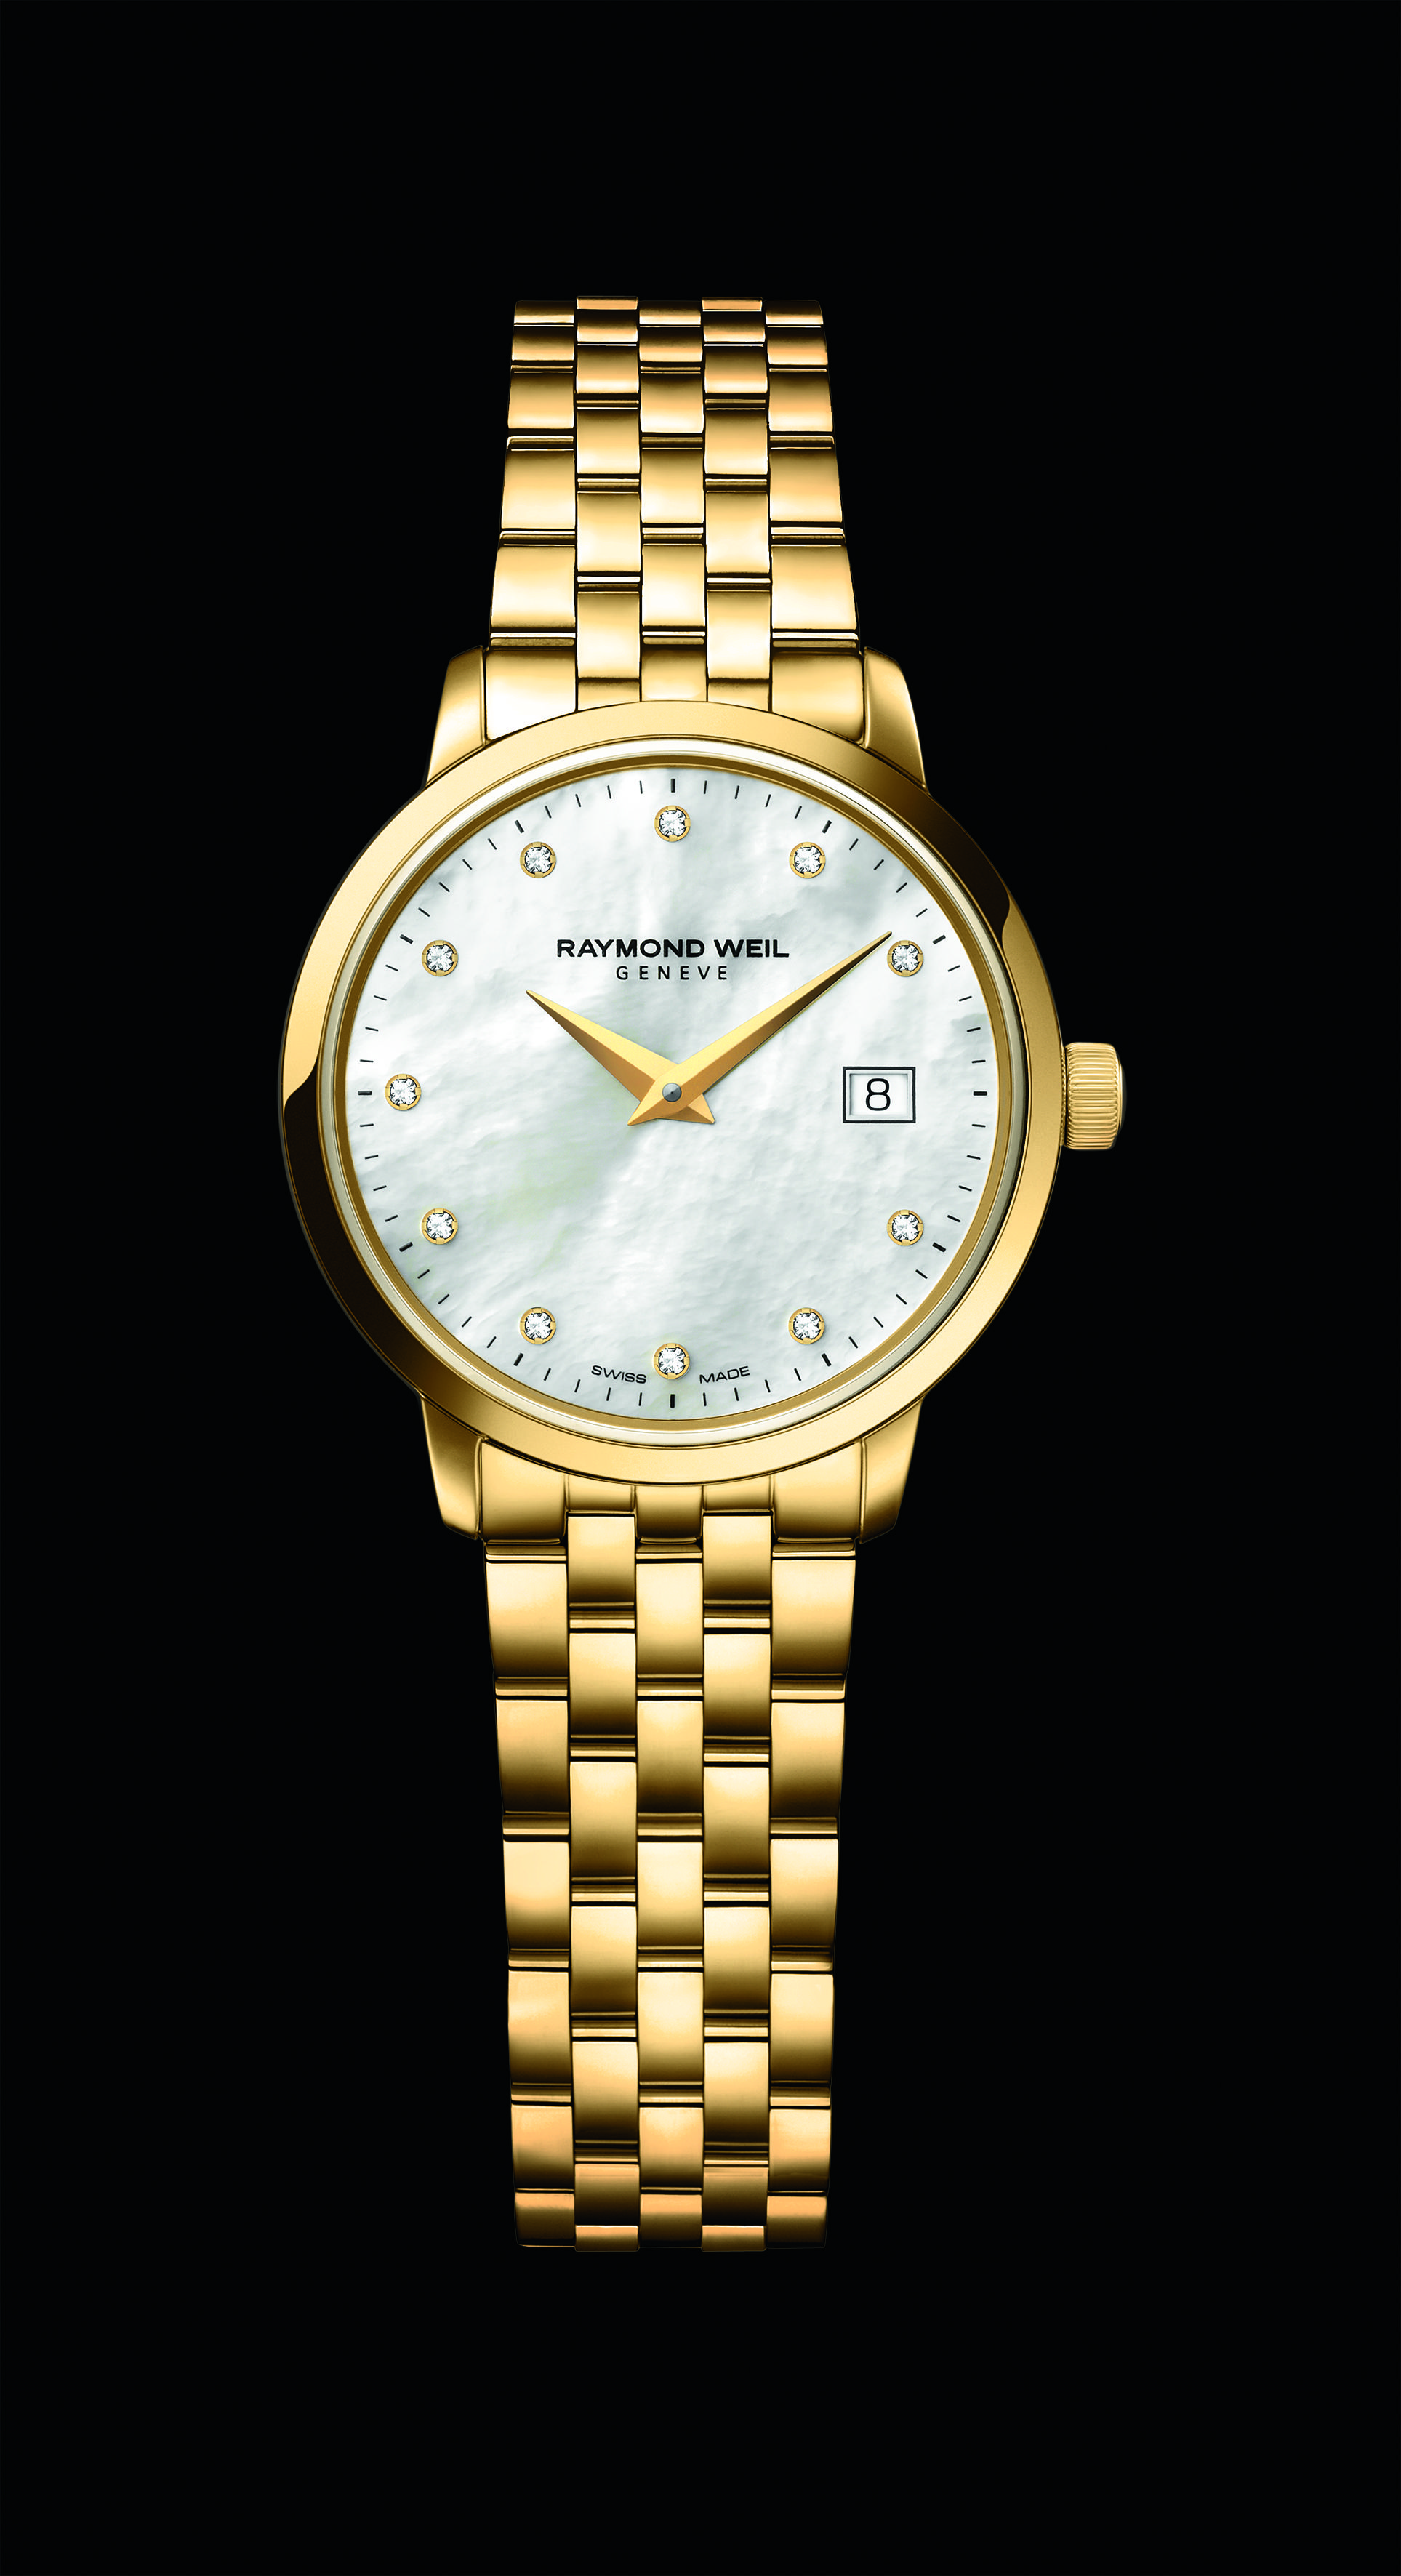 The Toccata Watch Collection For Men And Women This Model Is The Ladies 29mm Model Studded With 11 Diamonds Refer Womens Watches Raymond Weil Watches Watches